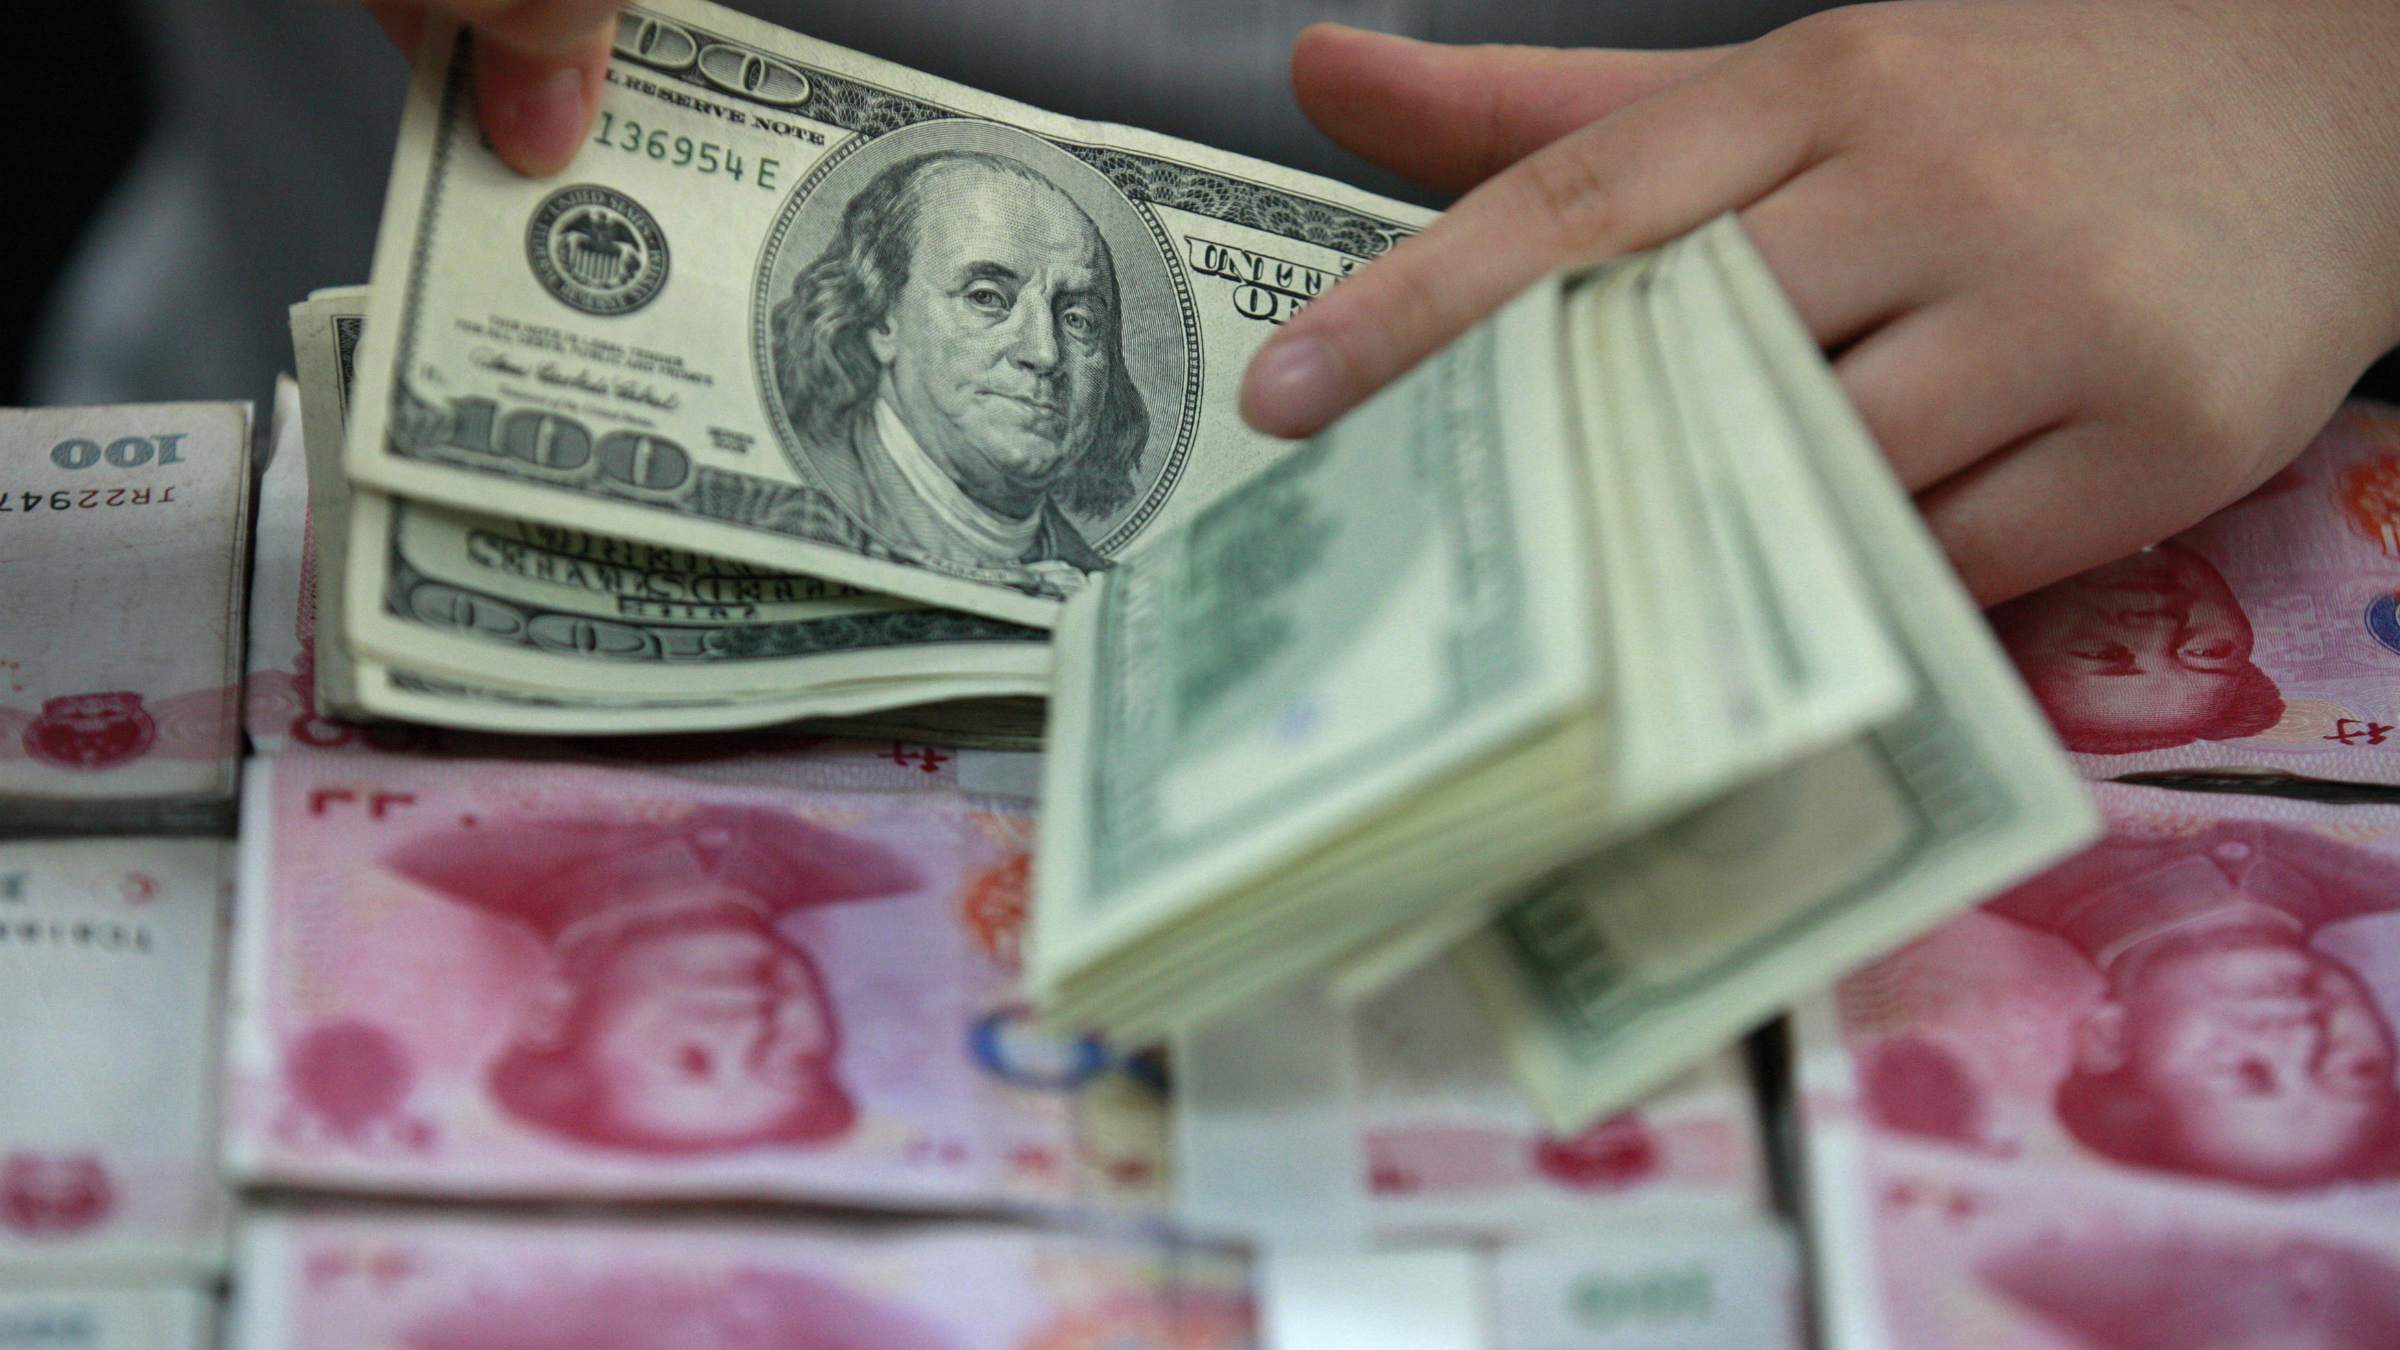 A bank clerk counts U.S. dollar banknotes on bundles of 100 Chinese yuan banknotes at a branch of a bank in Huaibei, Anhui province April 26, 2012. China is likely to follow up its decision to widen the trading band for its renminbi currency with more steps to let market forces set exchange rates, People's Bank of China Deputy Governor Yi Gang said on Saturday. REUTERS/Stringer